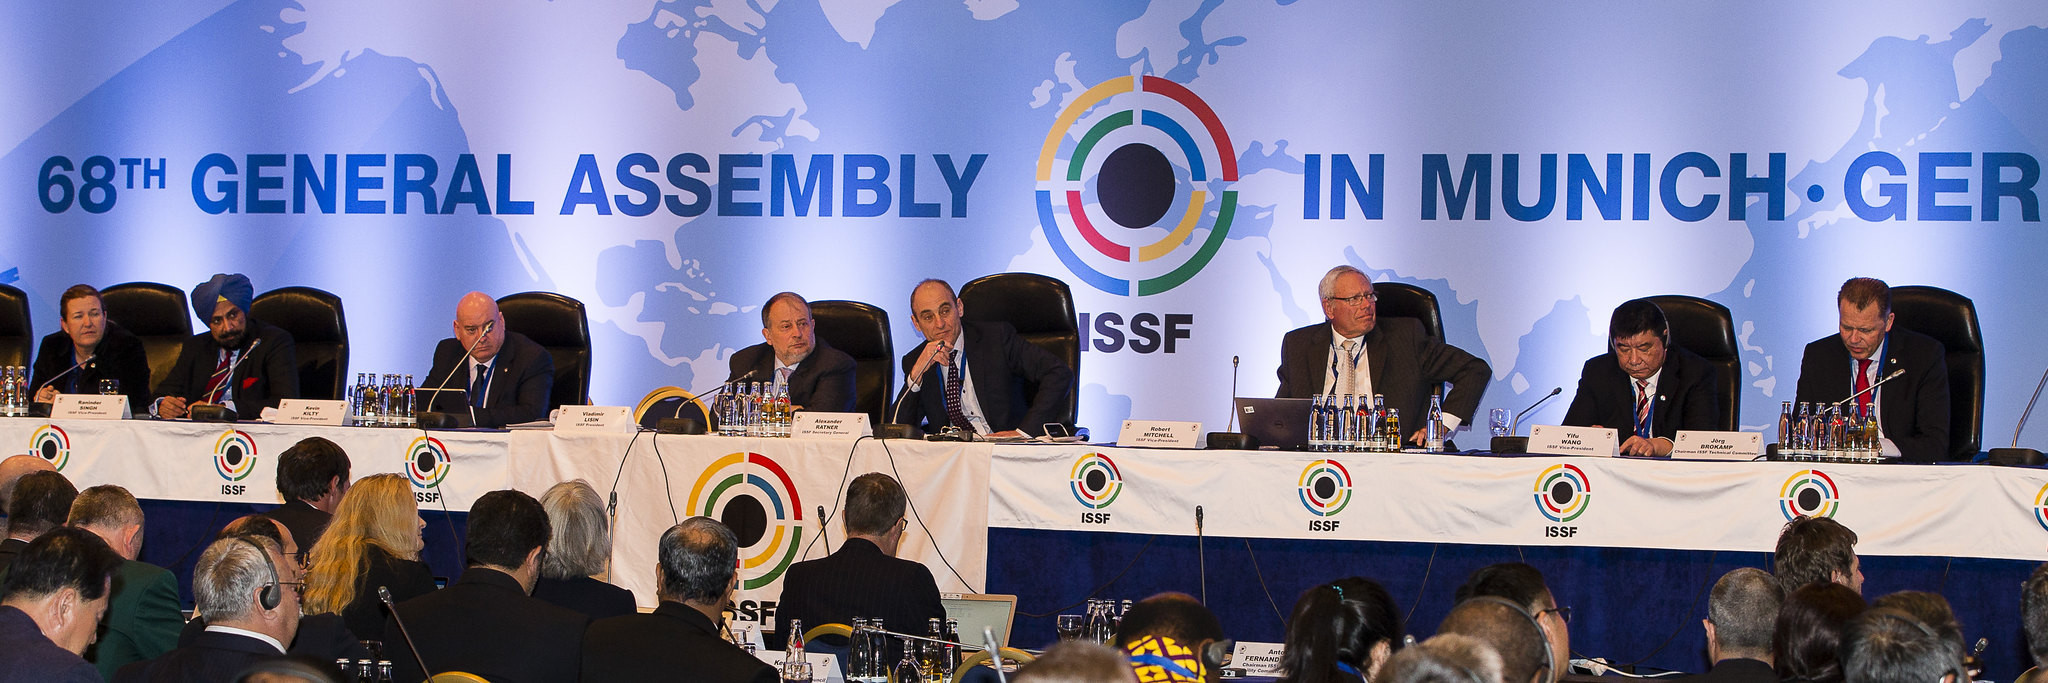 The Extraordinary General Assembly is set to take place in Munich ©ISSF